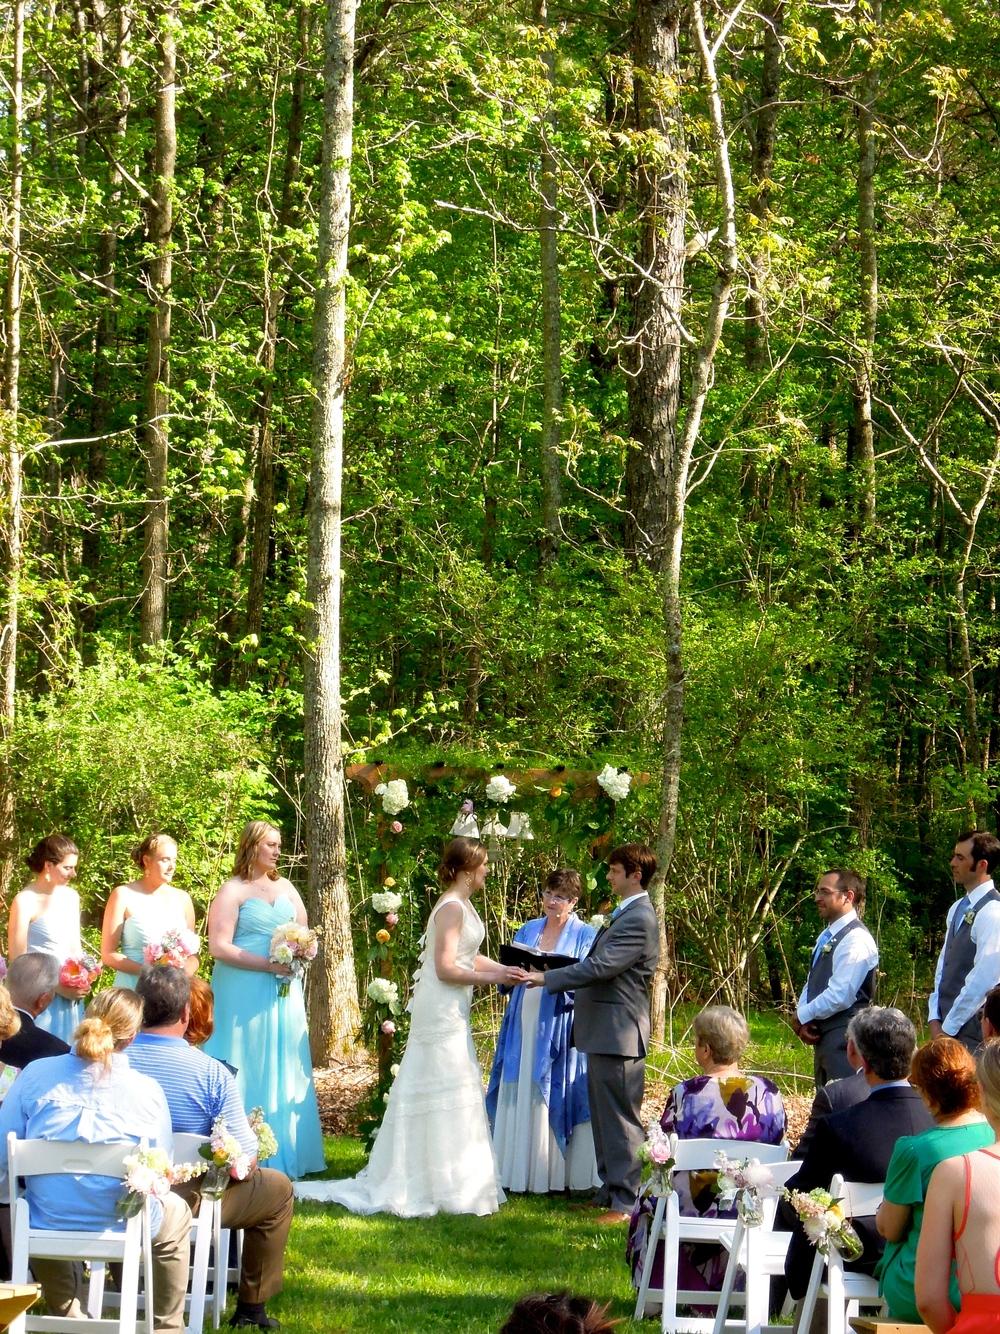 Wedding Ceremony Surrounded by Nature